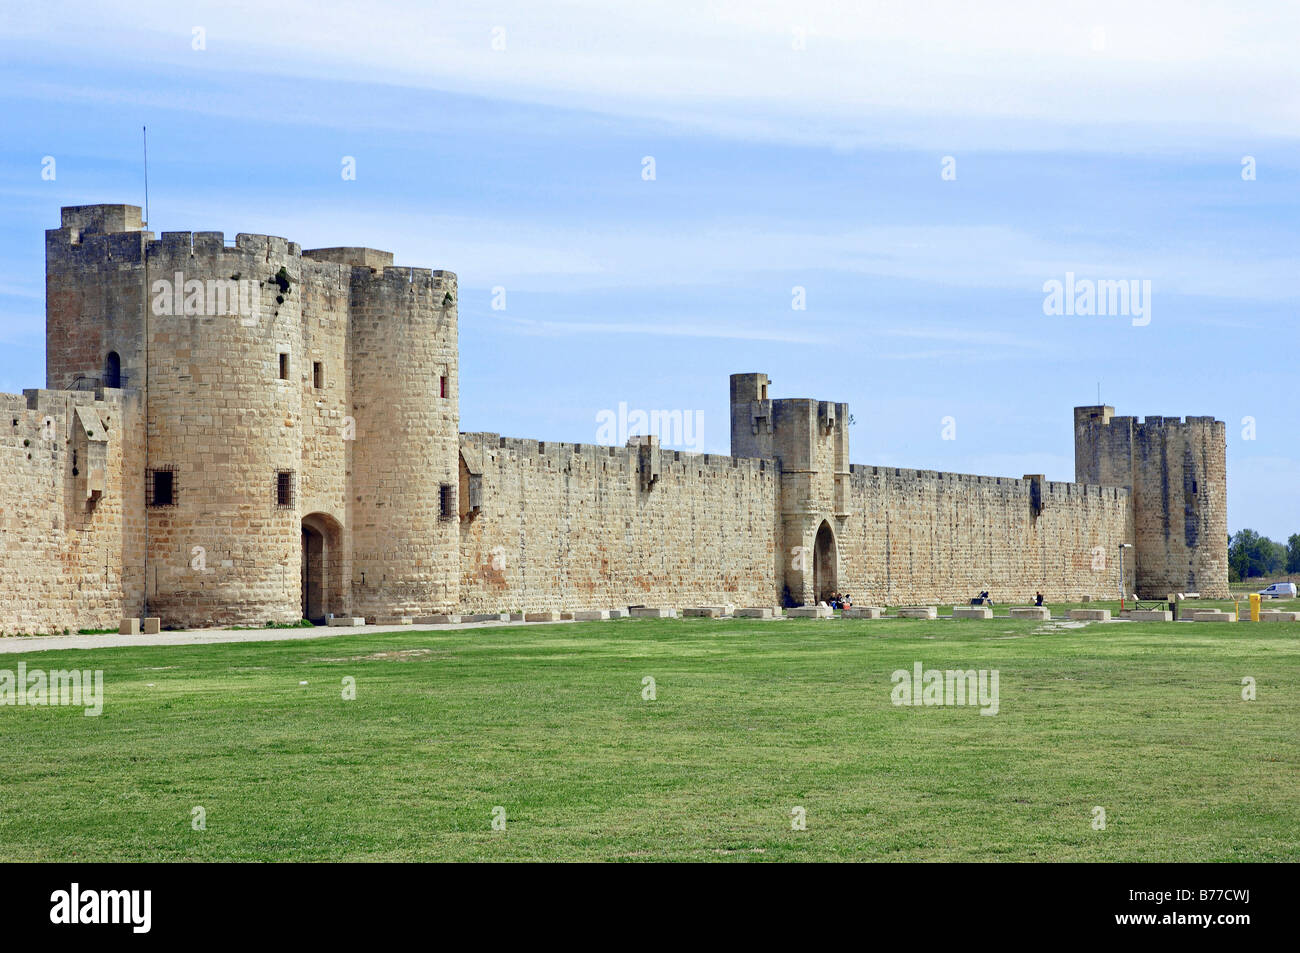 Old town wall, Aigues-Mortes, Camargue, Gard, Languedoc-Roussillon, Southern France, France, Europe - Stock Image